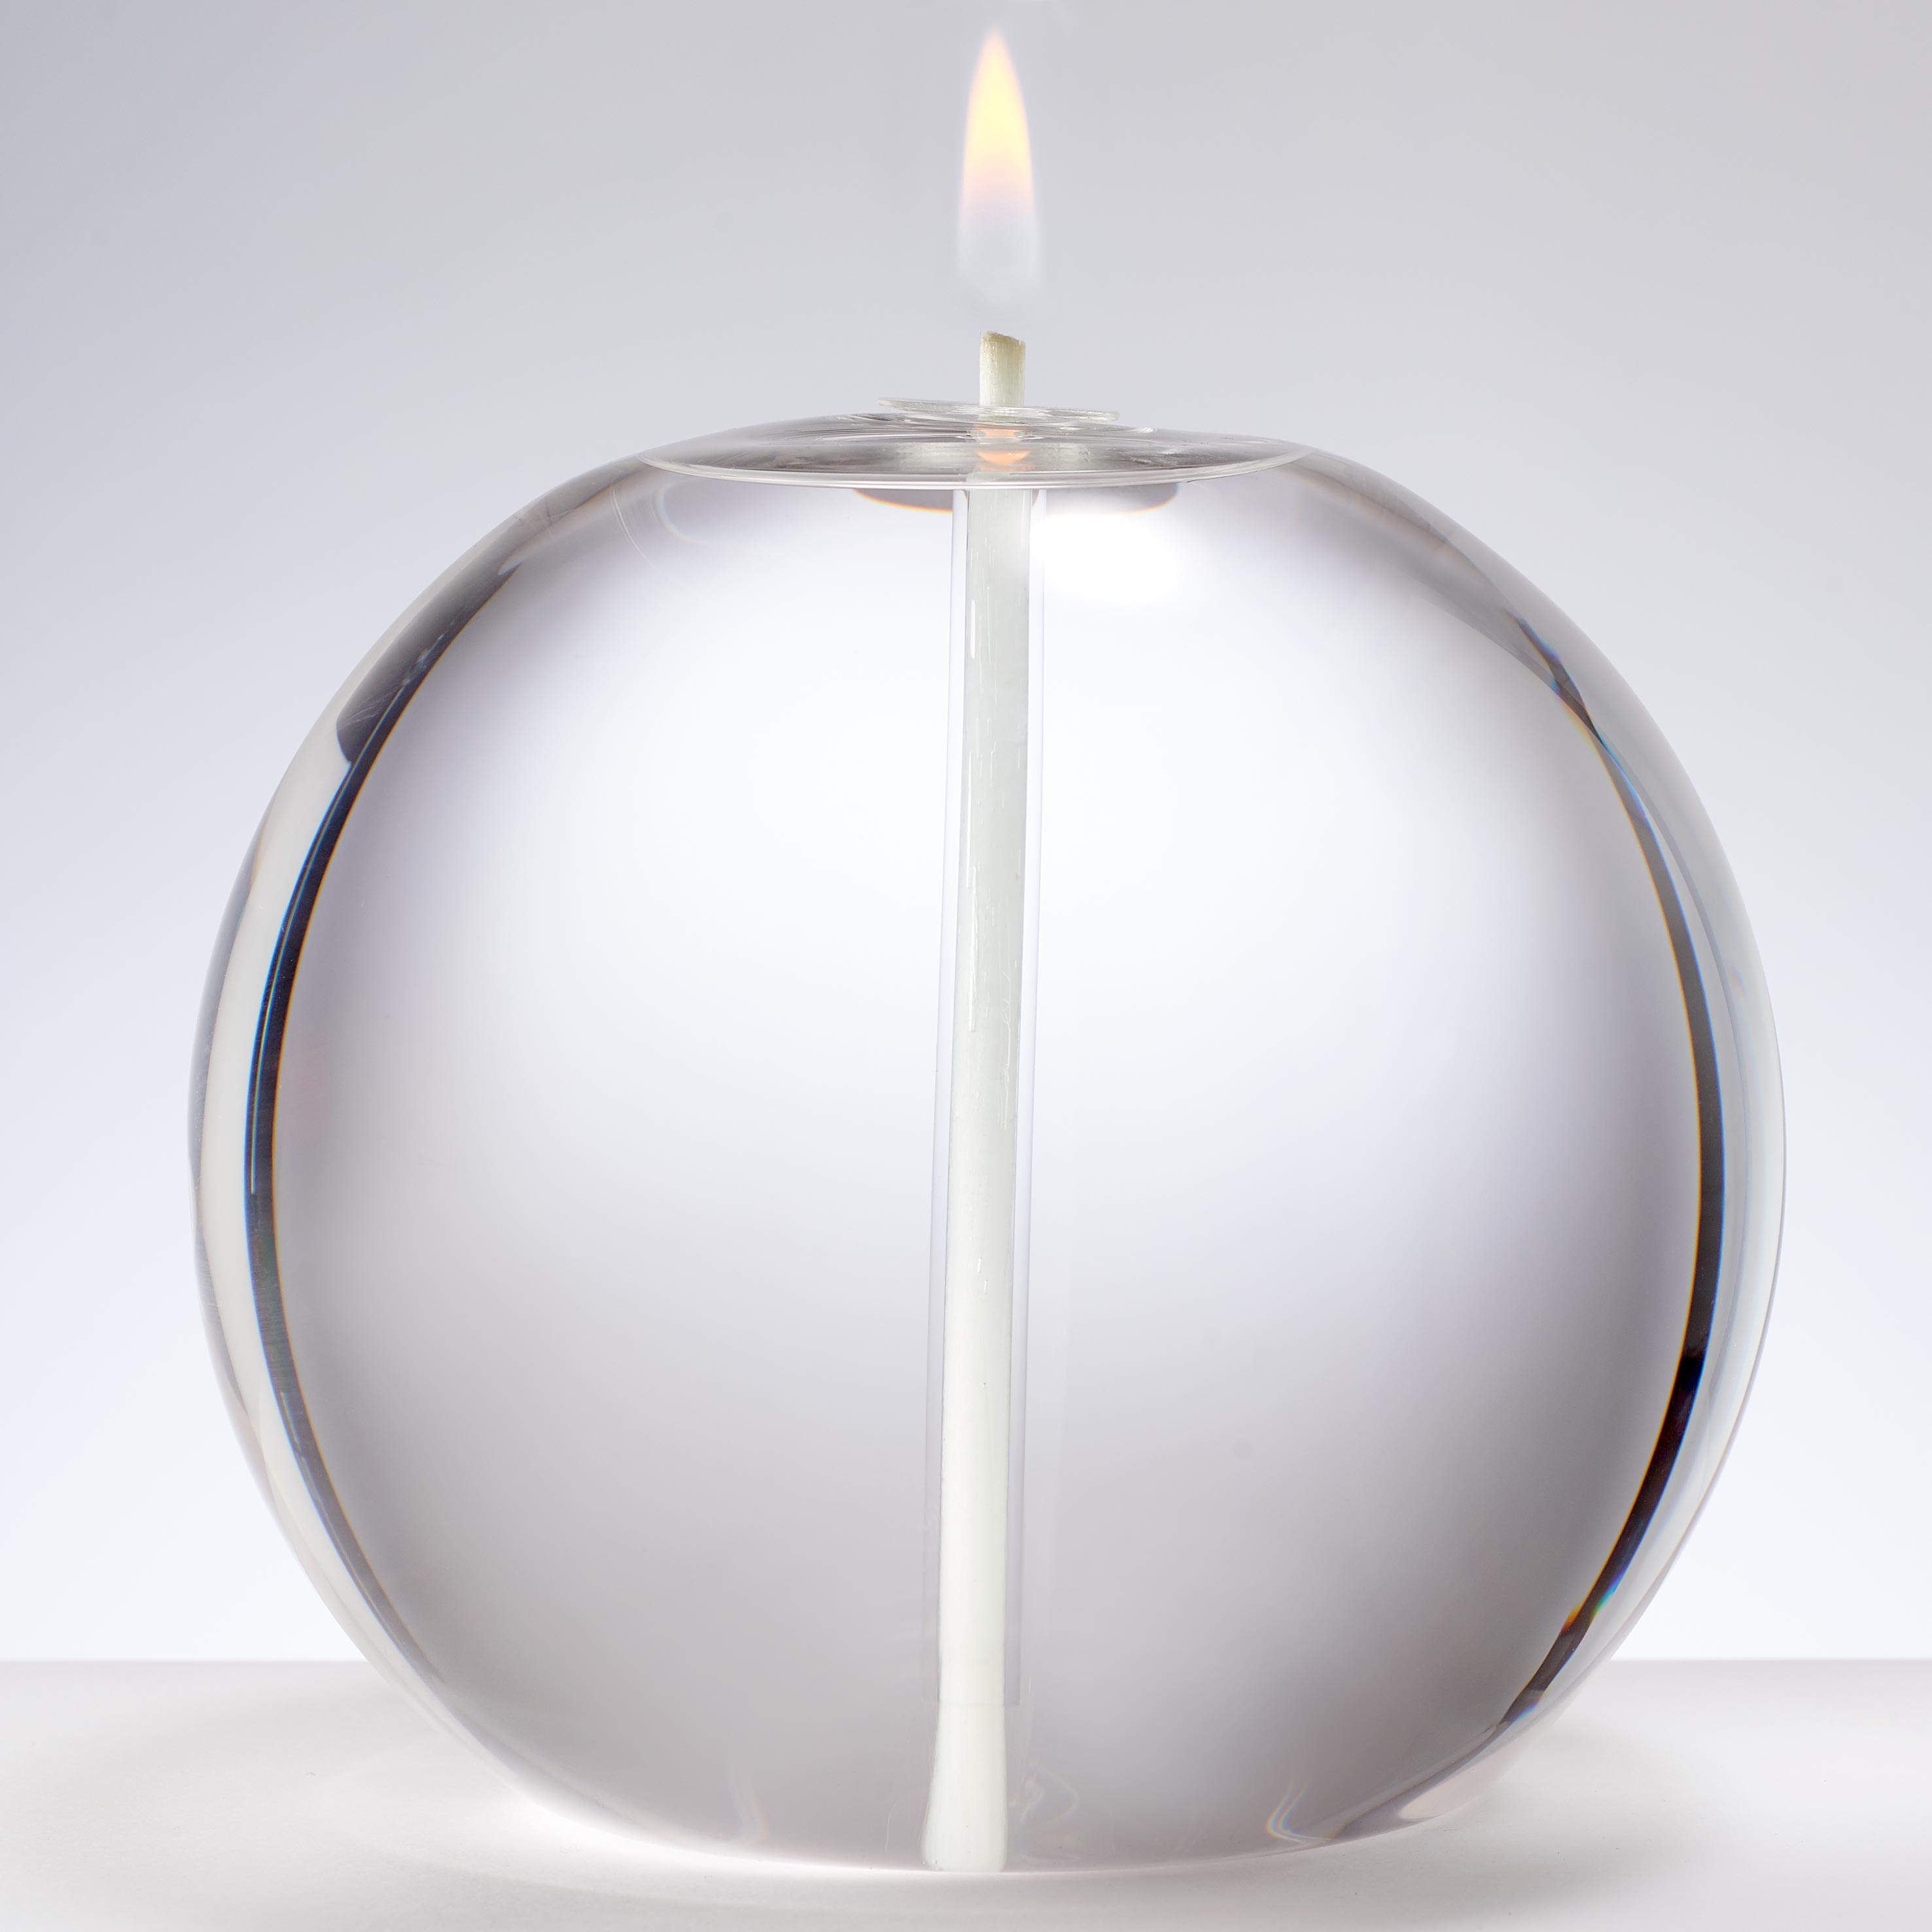 EXTRA LARGE ROUND GLASS CANDLE